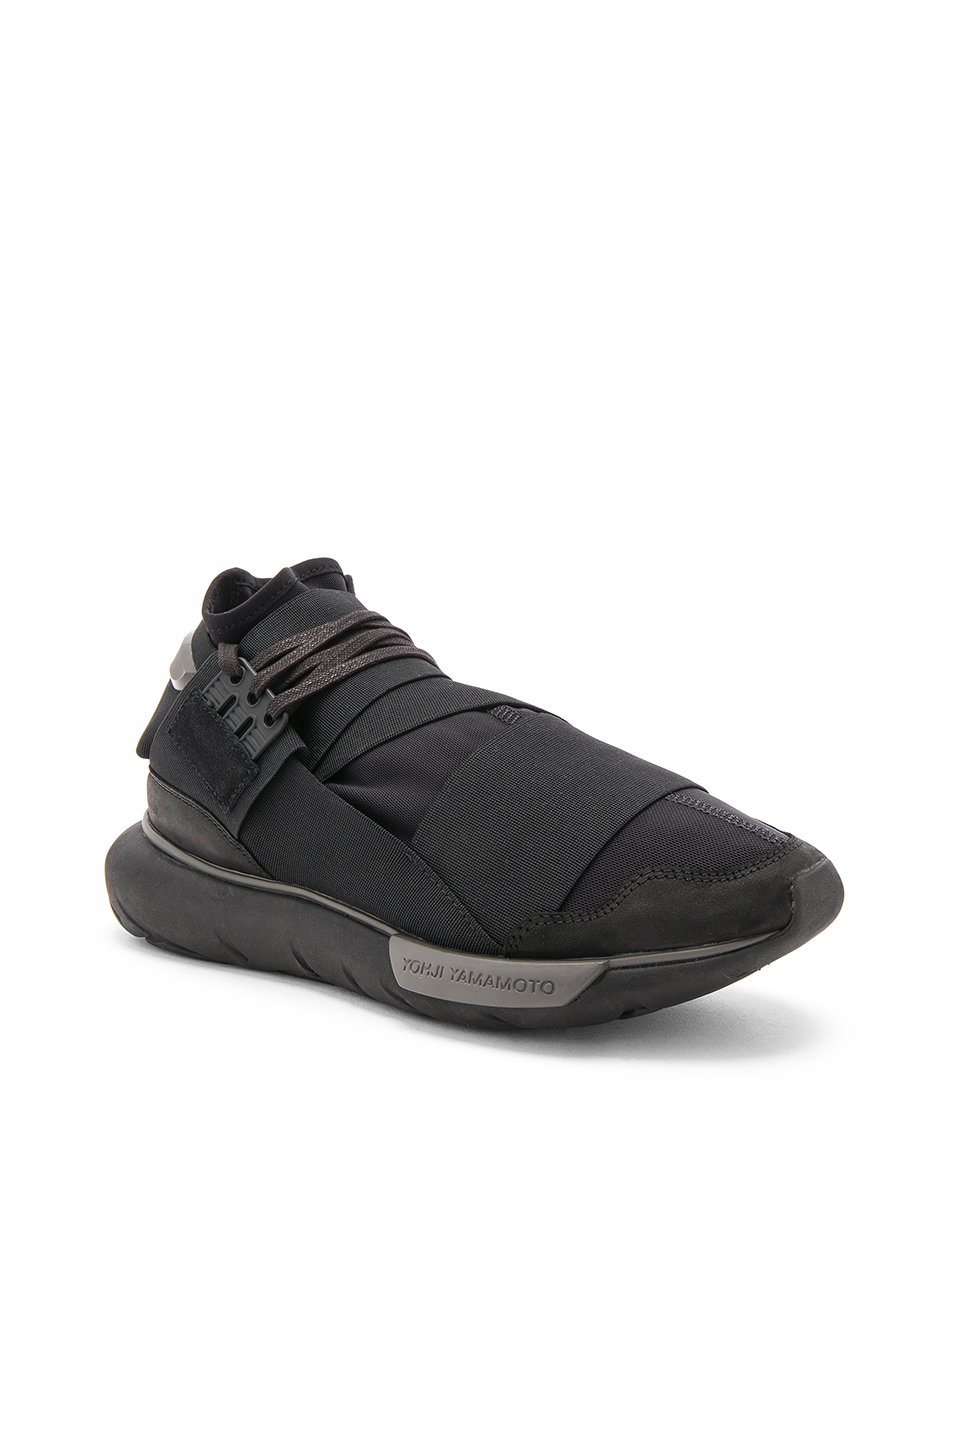 d6c099ac78a2b Buy Original Y-3 Yohji Yamamoto Qasa High at Indonesia